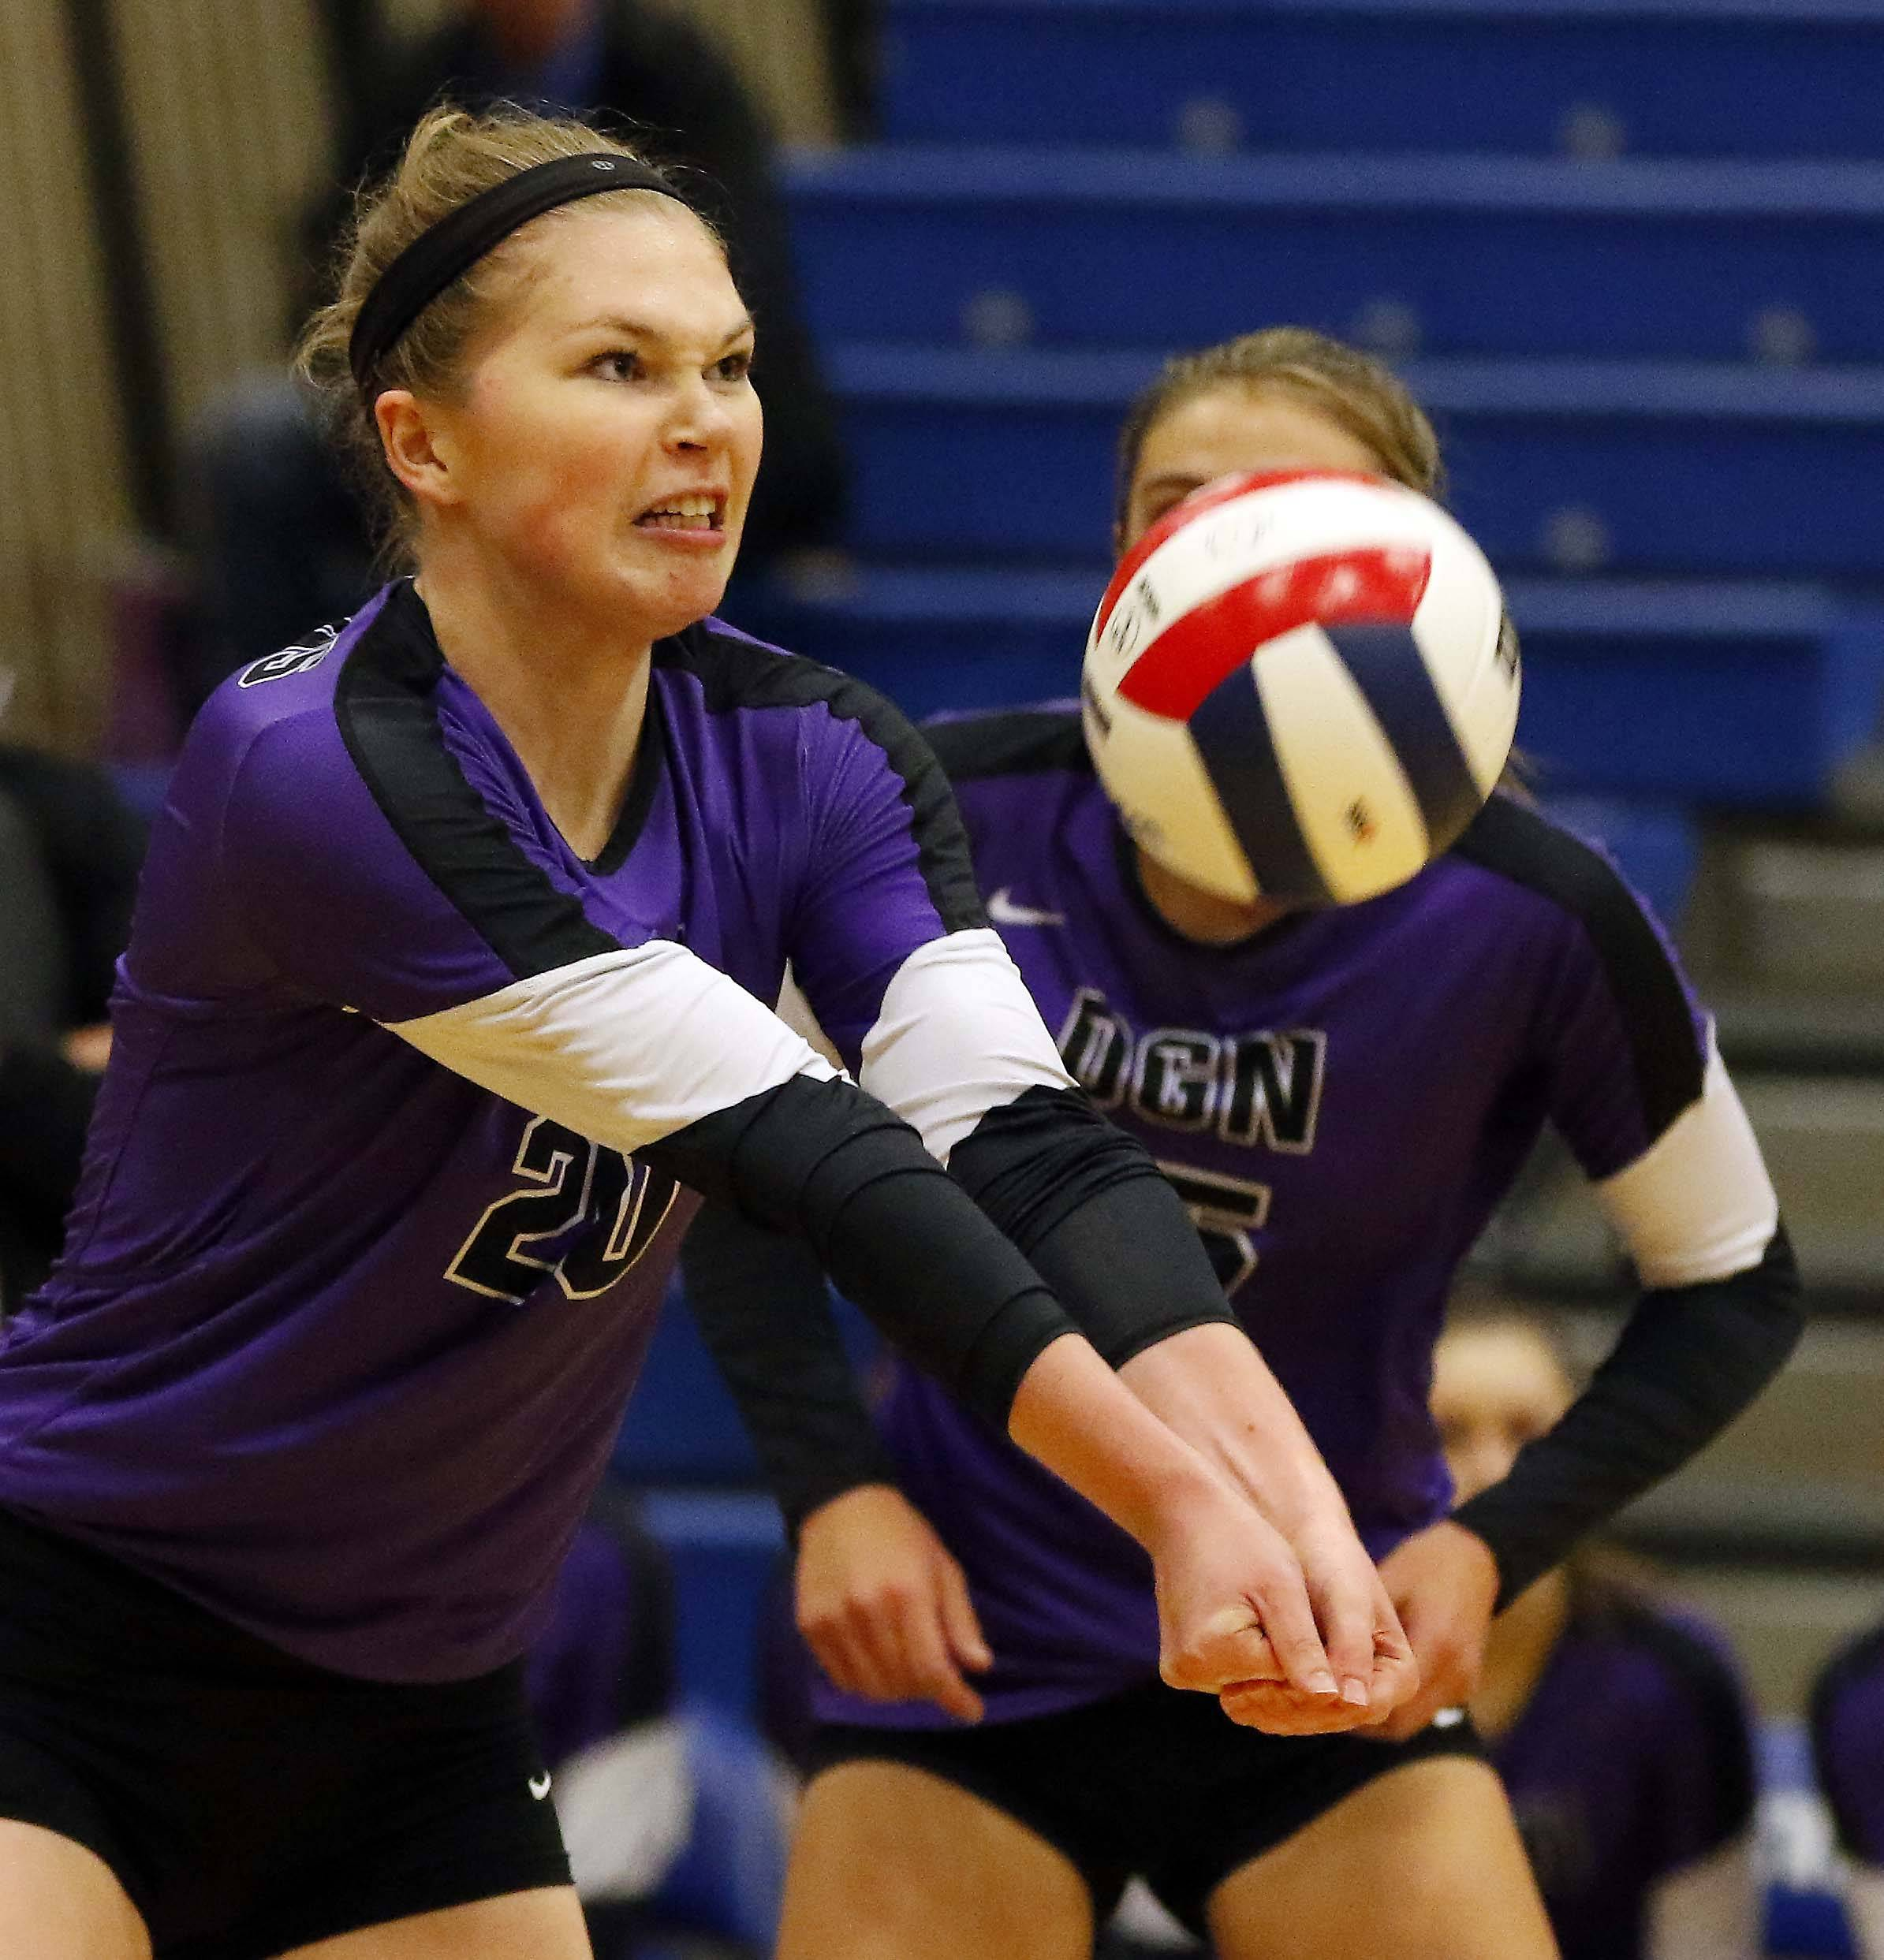 Downers Grove North's Clare Delaplane (20) Friday in the Geneva volleyball supersectional.